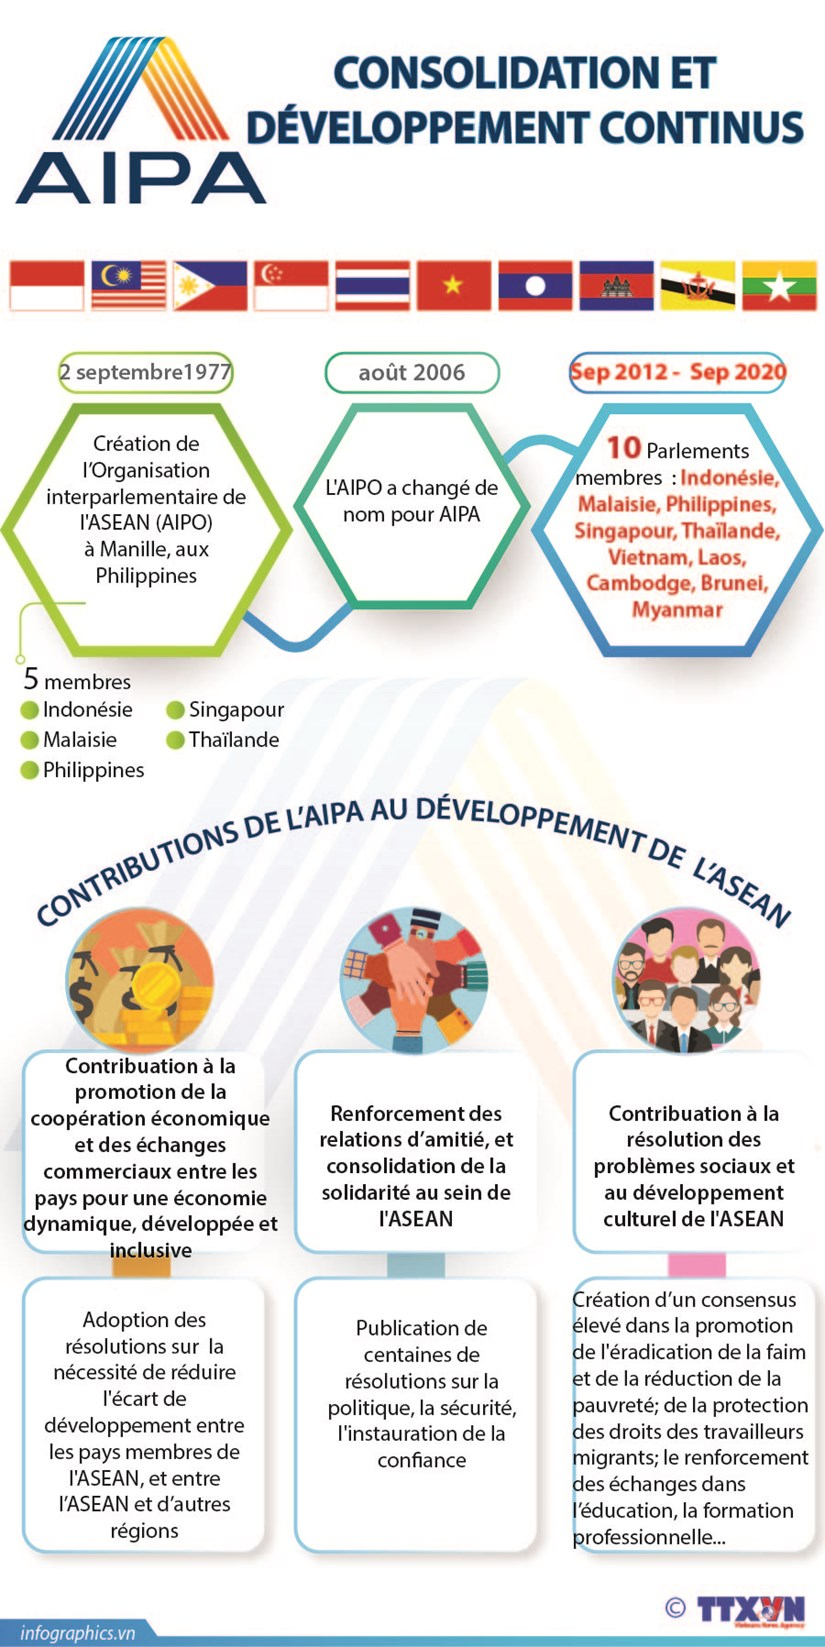 AIPA: Consolidation et Developpement continus hinh anh 1